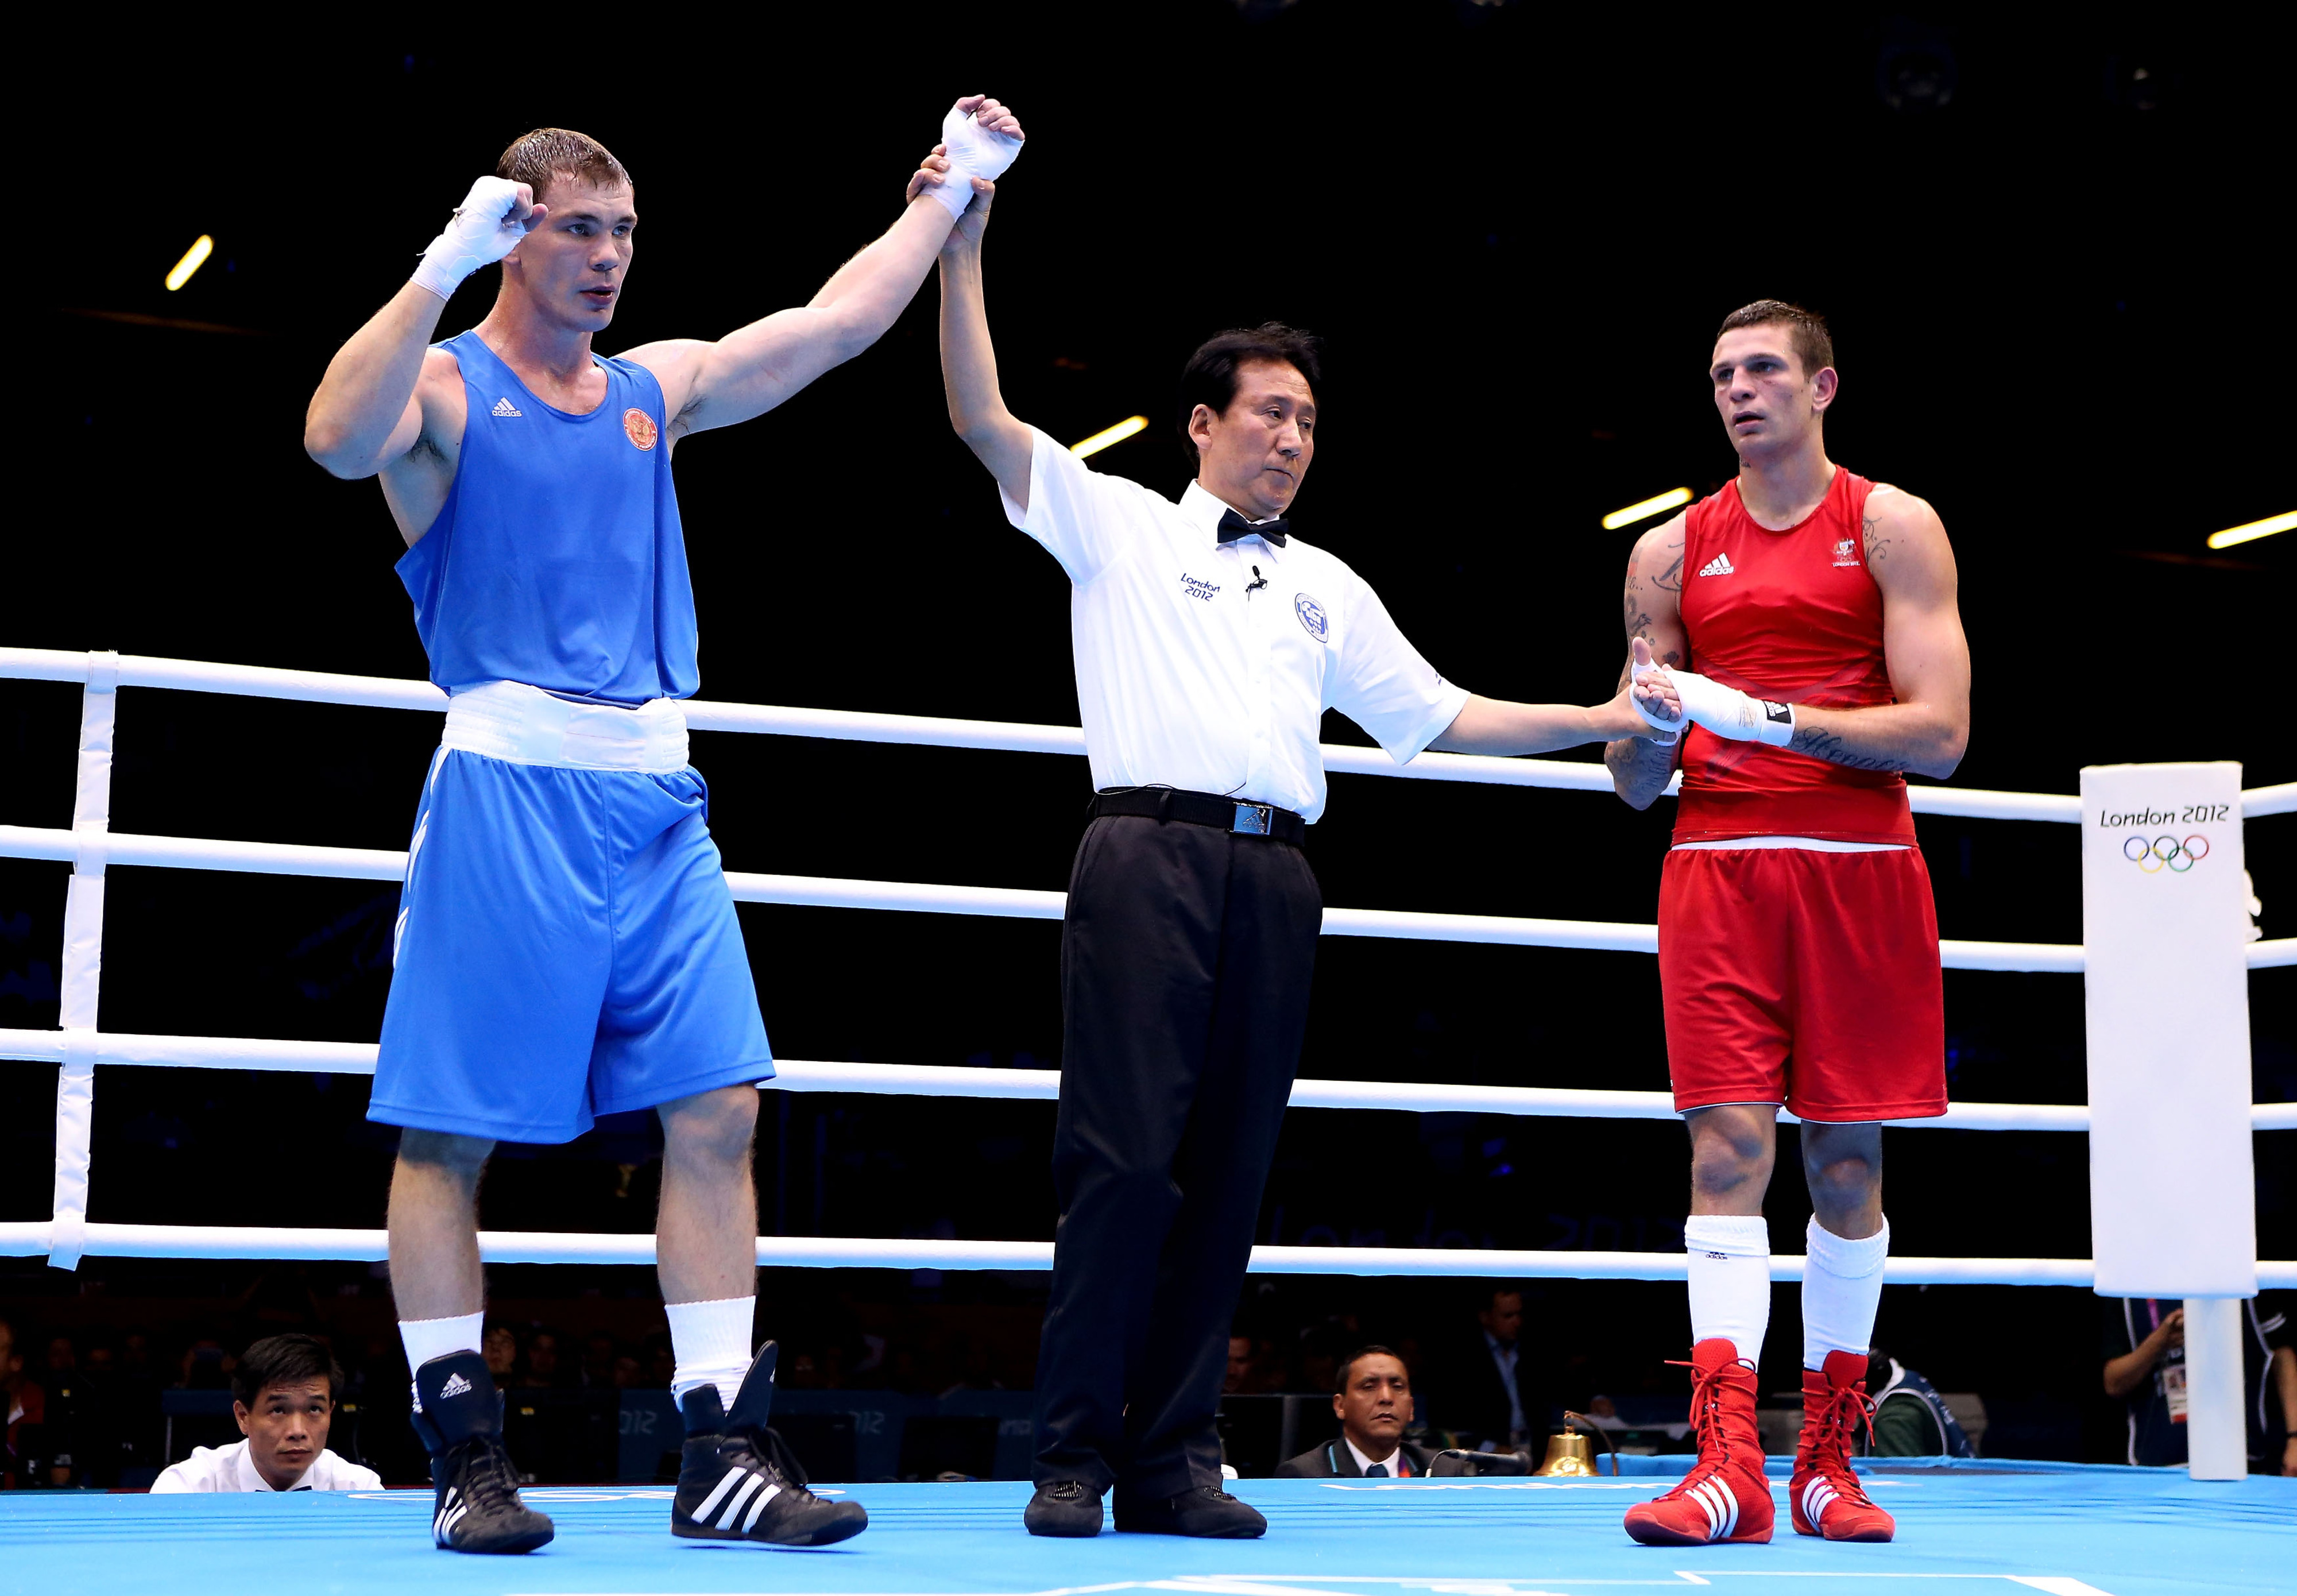 Egor Mekhontcev of Russia advanced to the light heavyweight final in London. (Photo by Scott Heavey/Getty Images)